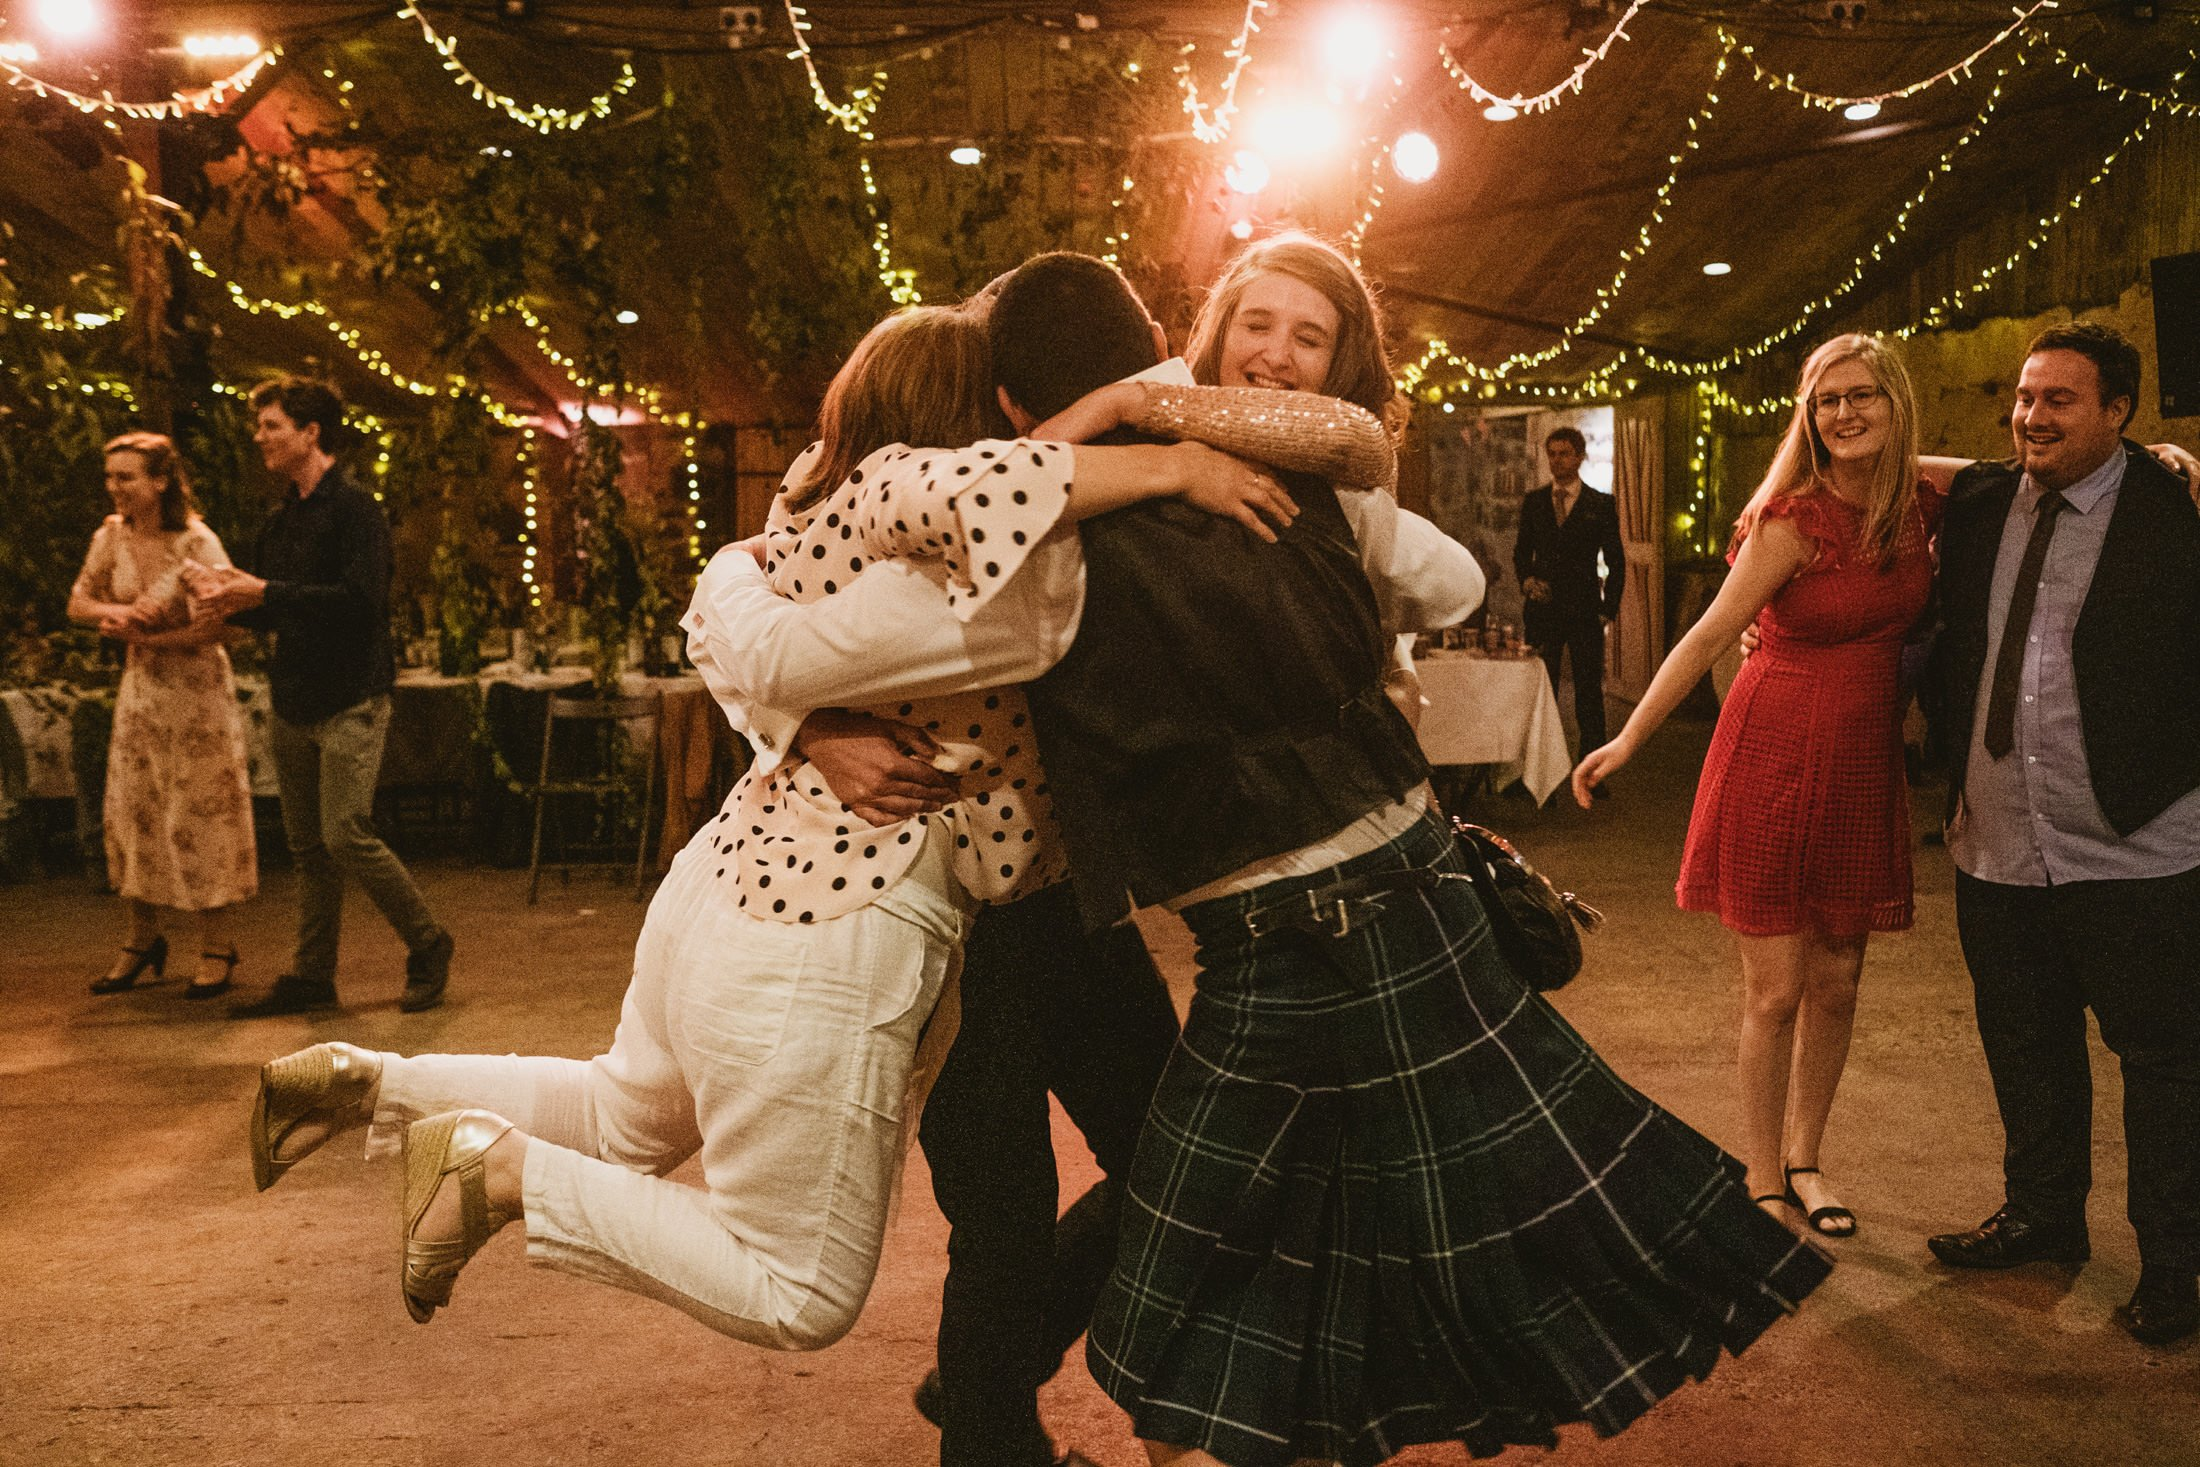 bride, groom and all their friends dancing in a circle